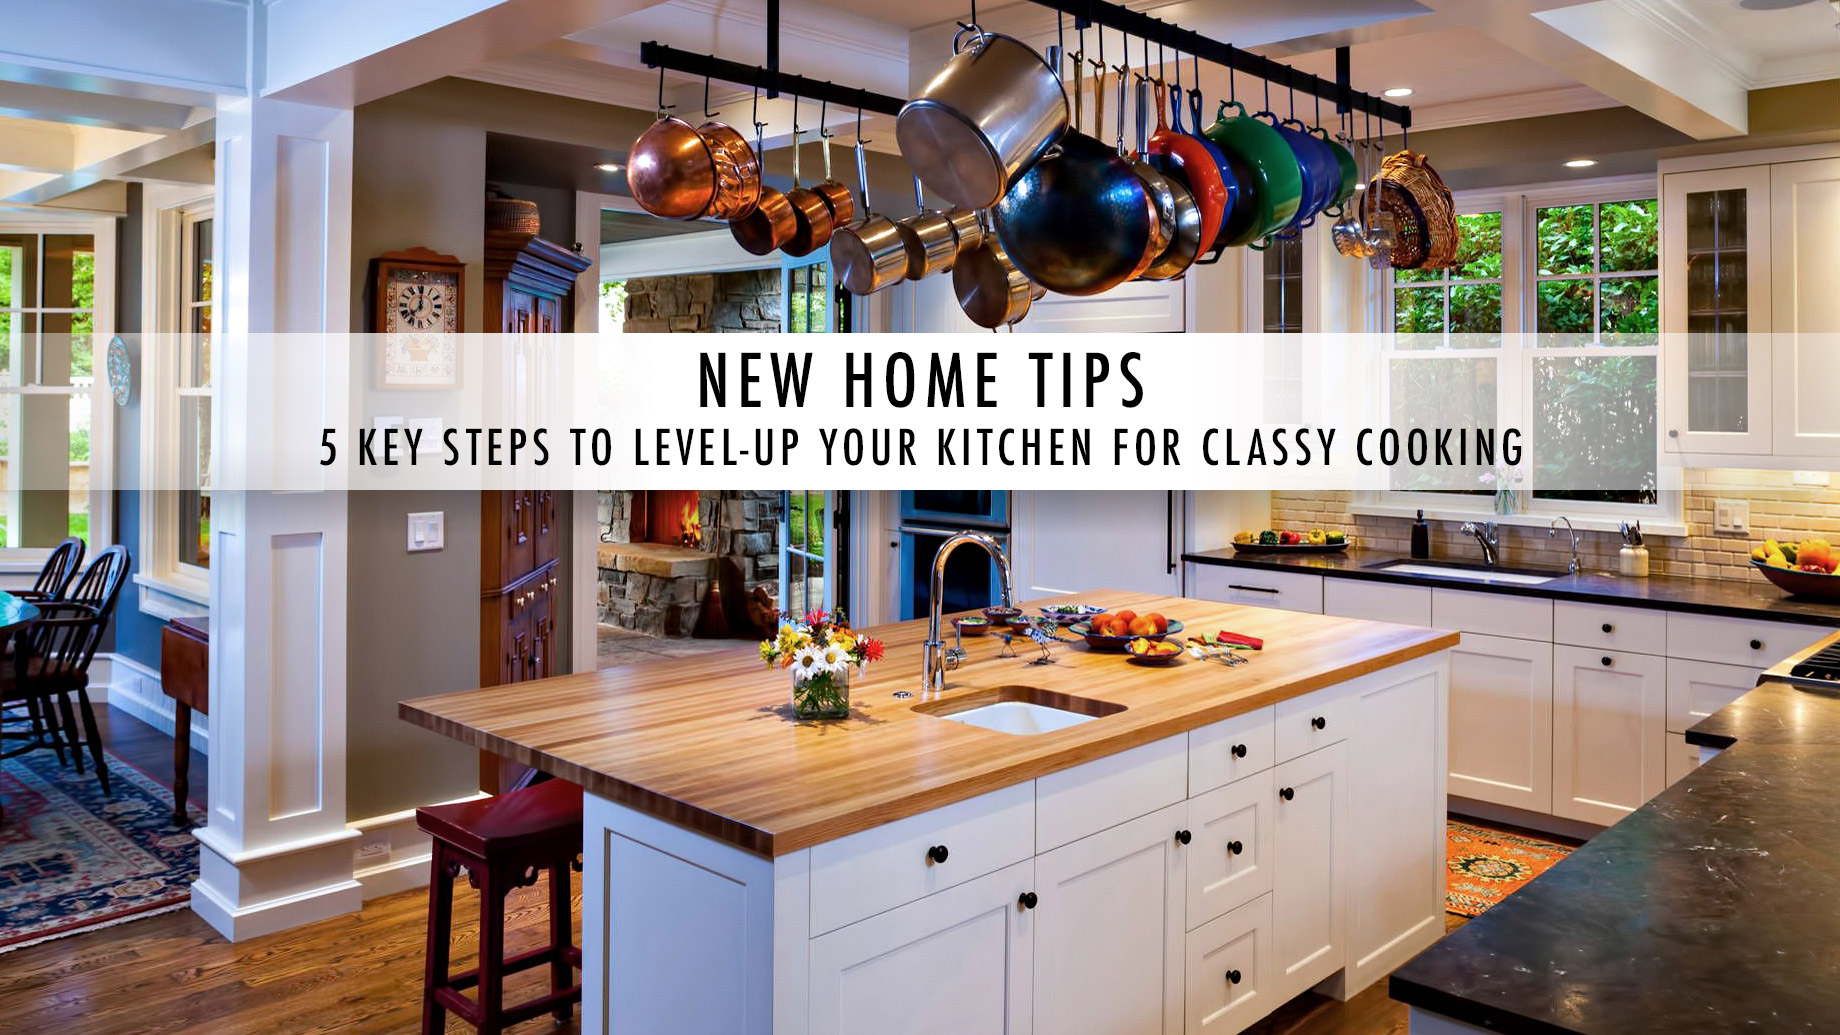 New Home Tips - 5 Key Steps to Level-up Your Kitchen for Classy Cooking